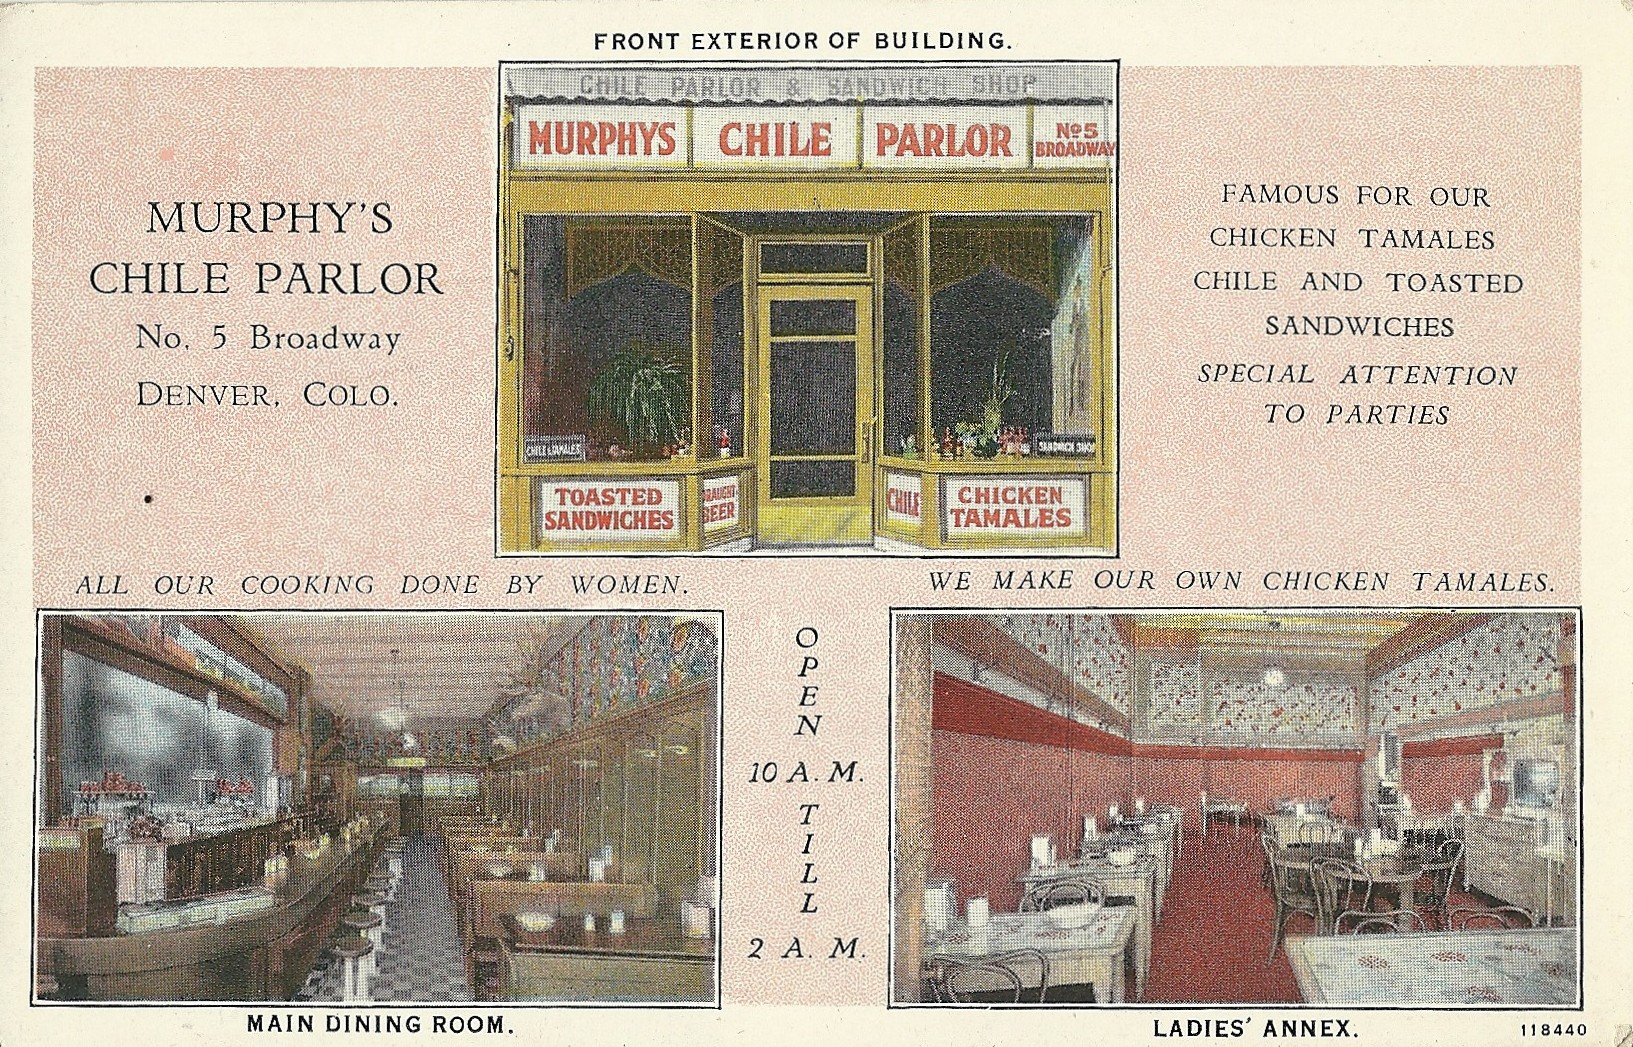 <p>An ad for Murphy's Chili Parlor at 5 Broadway in Denvercirca 1920s.</p>